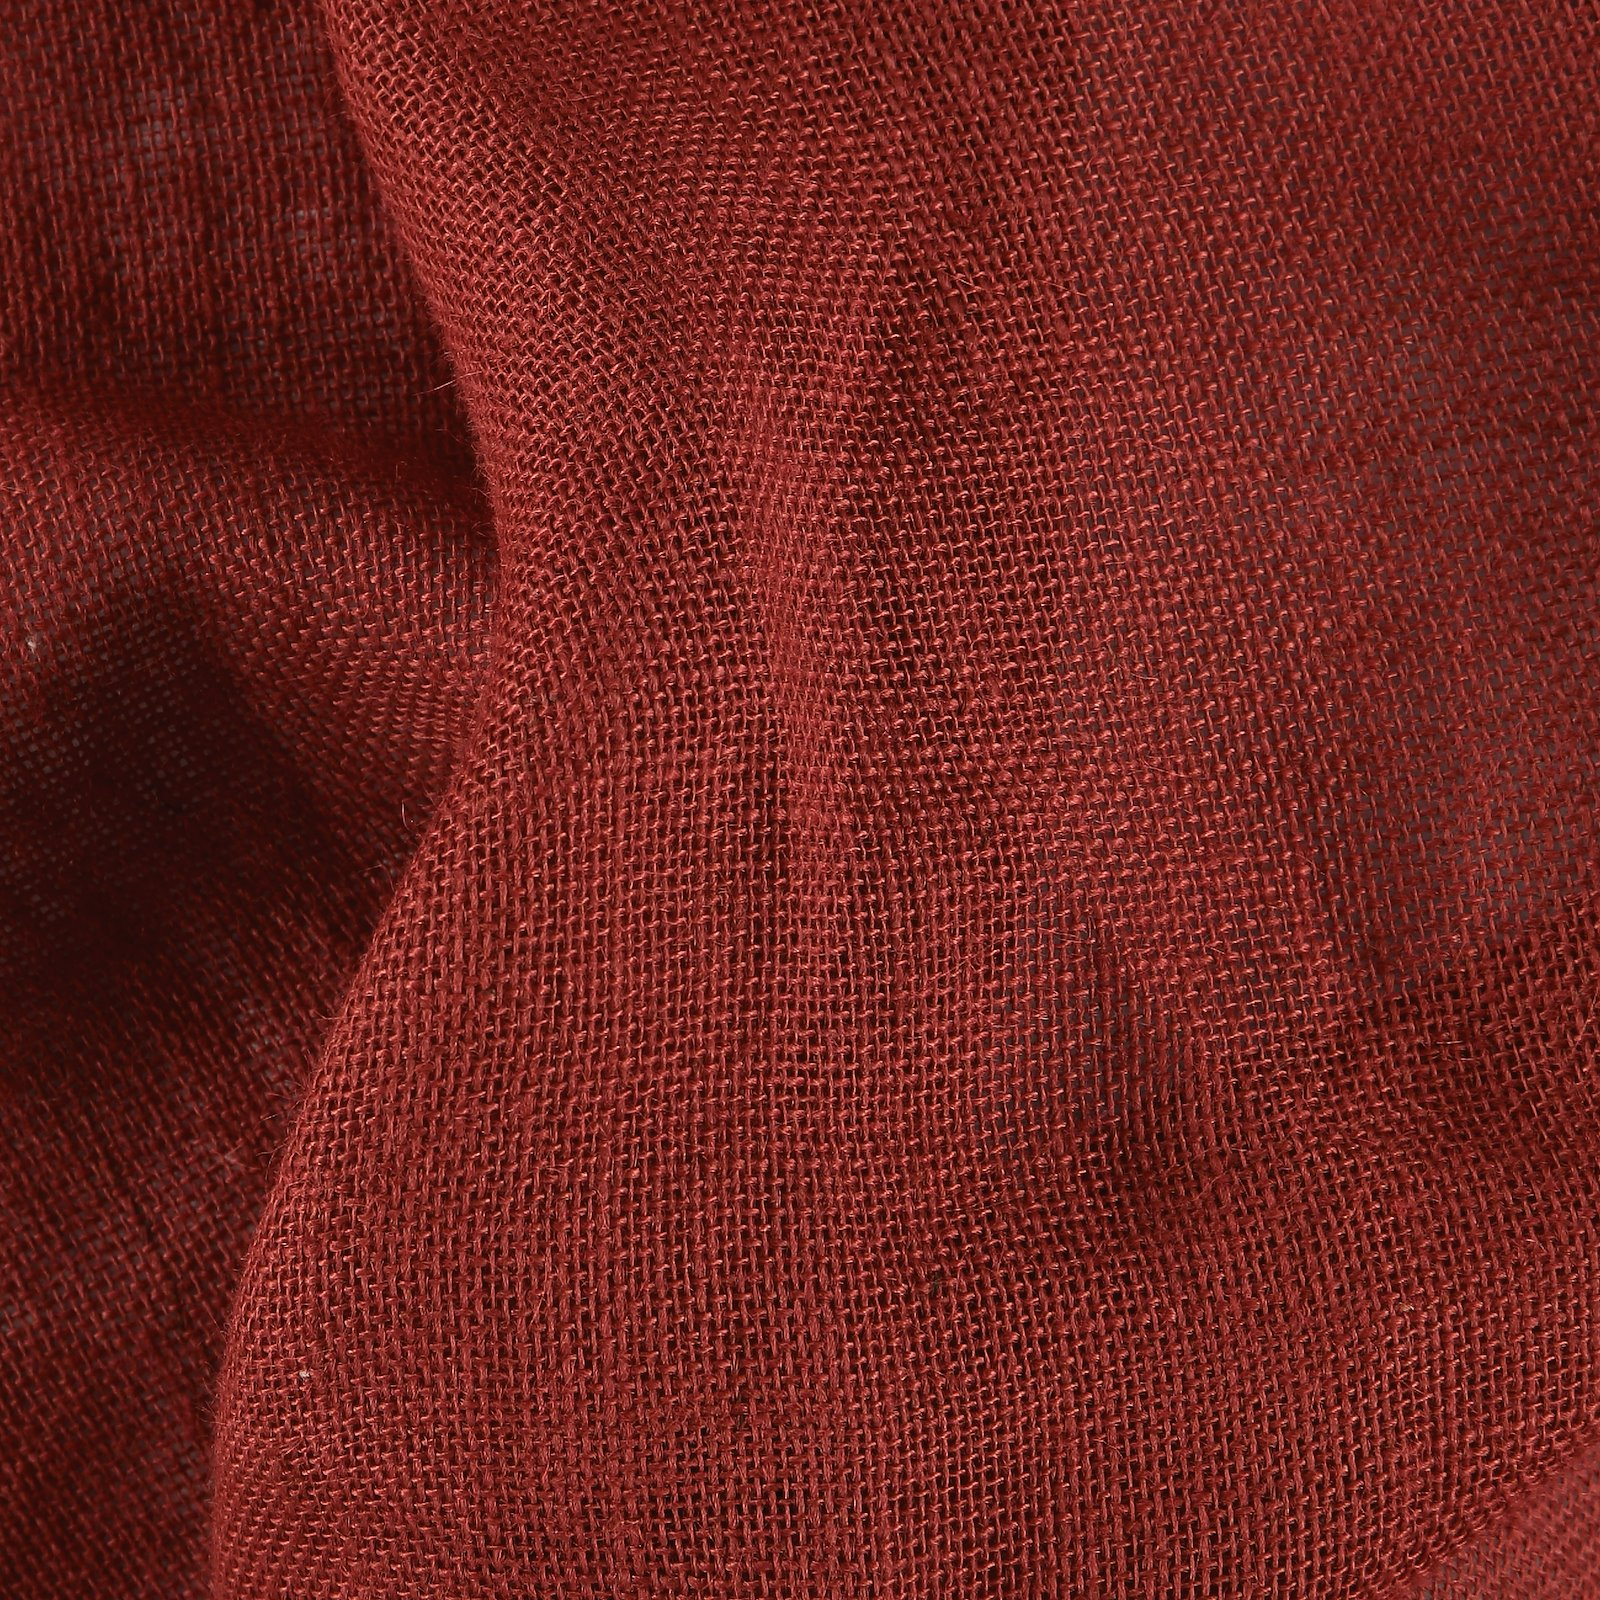 Hessian classic red